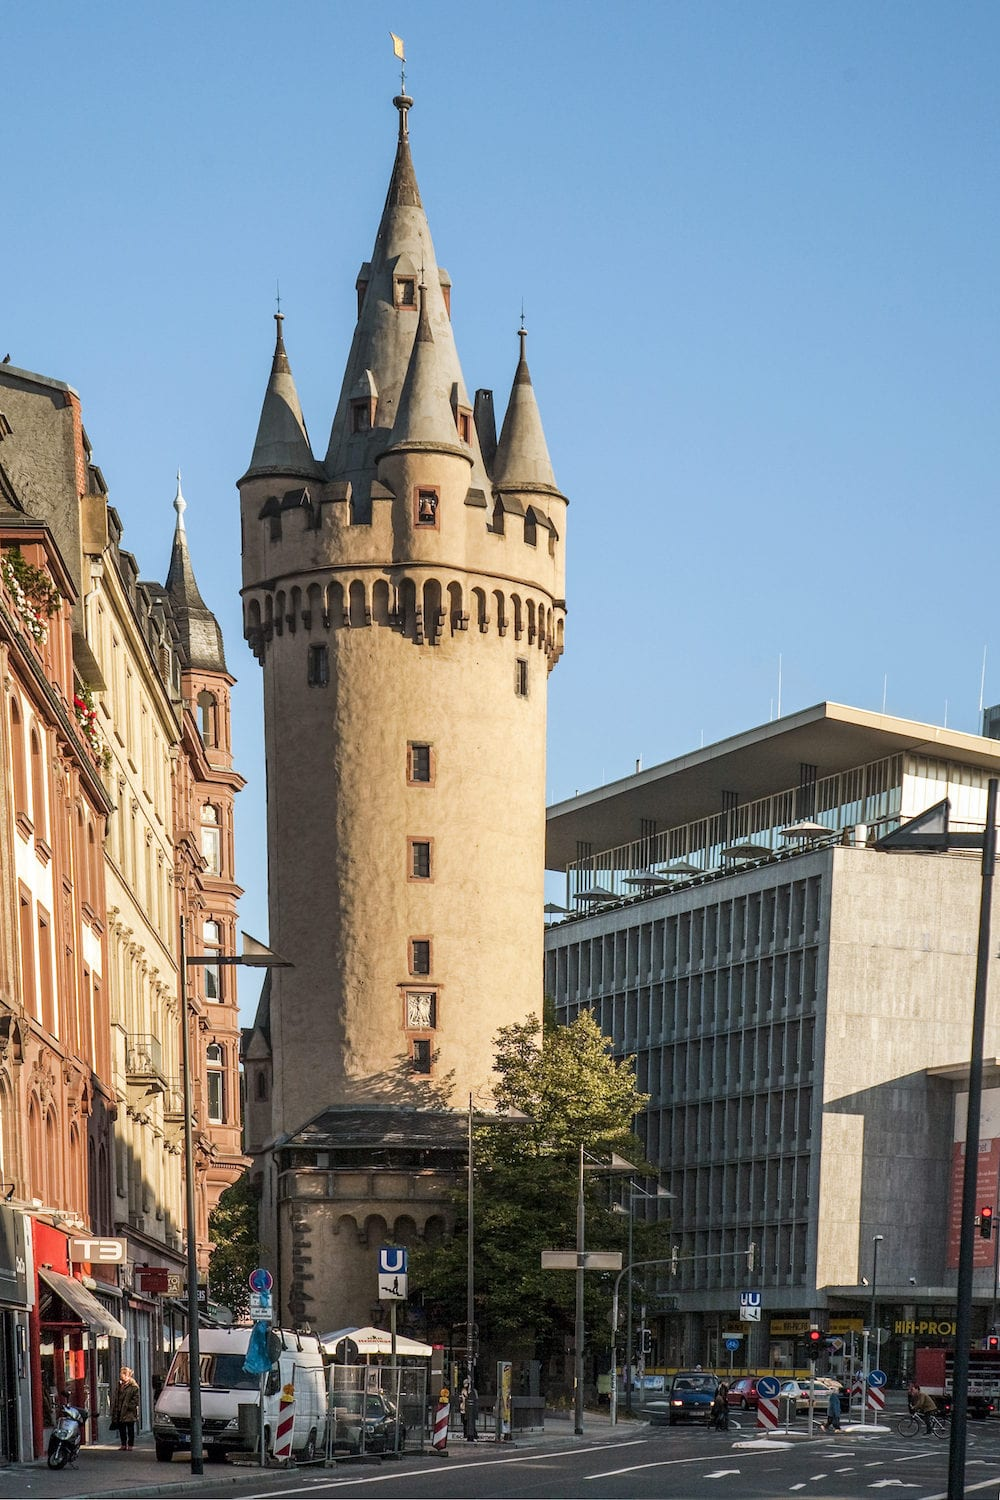 FRANKFURT GERMANY - : Eschersheimer turm in Frankfurt Germany. Eschenheimer Turm was a city gate part of the late-medieval fortifications of Frankfurt am Main and is a landmark of the city.